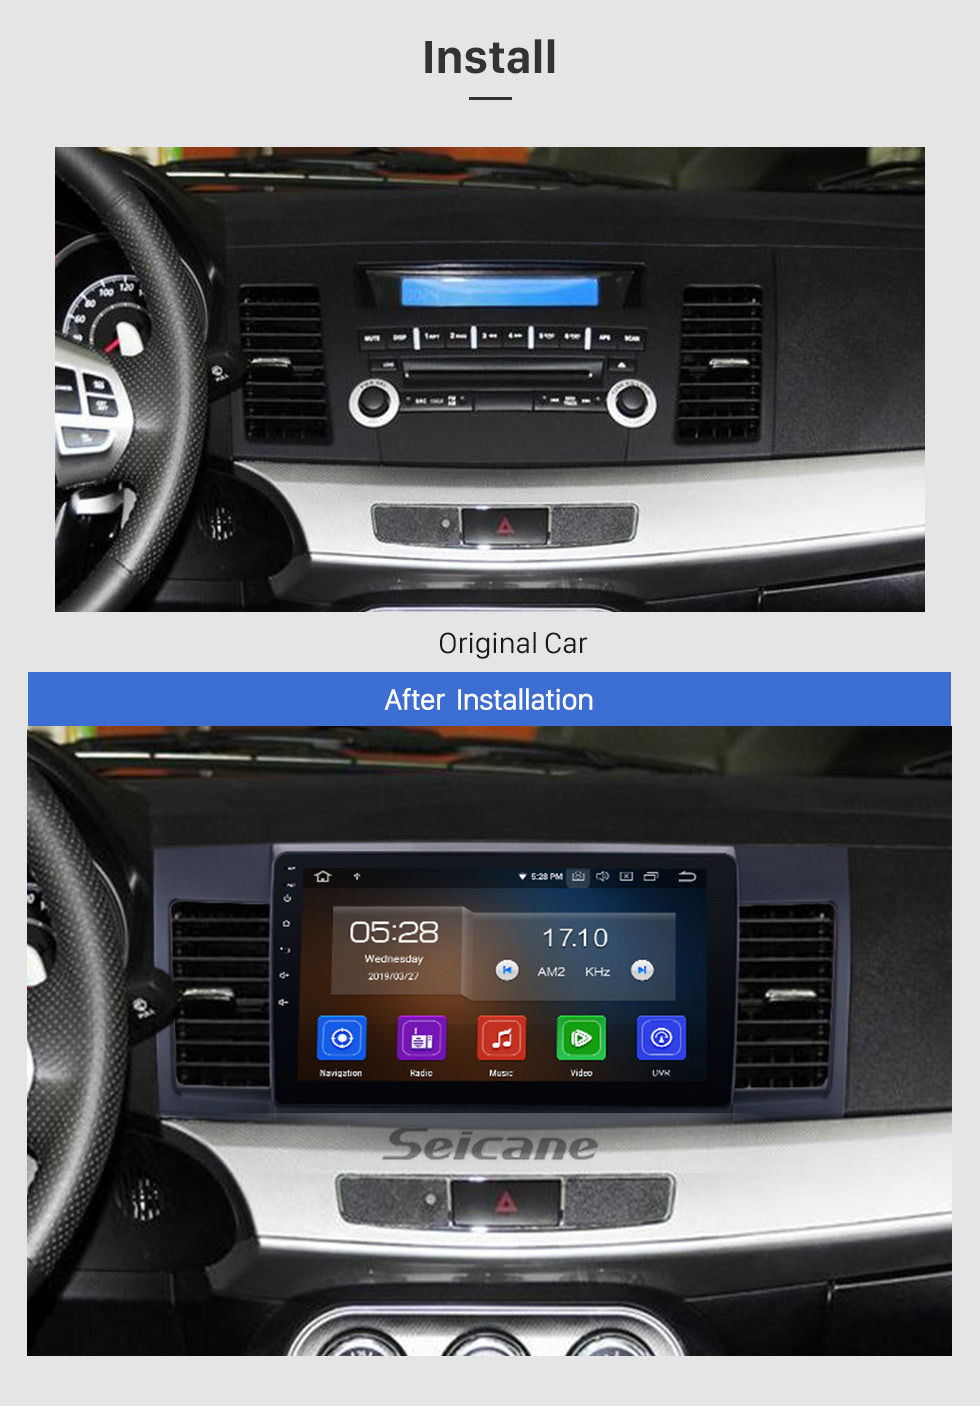 Seicane 10.1 inch Android 10.0 Radio GPS navigation system for 2007-2015 Mitsubishi LANCER with Mirror link Bluetooth HD touch screen OBD2 DVR Rearview camera TV 1080P Video USB Steering Wheel Control